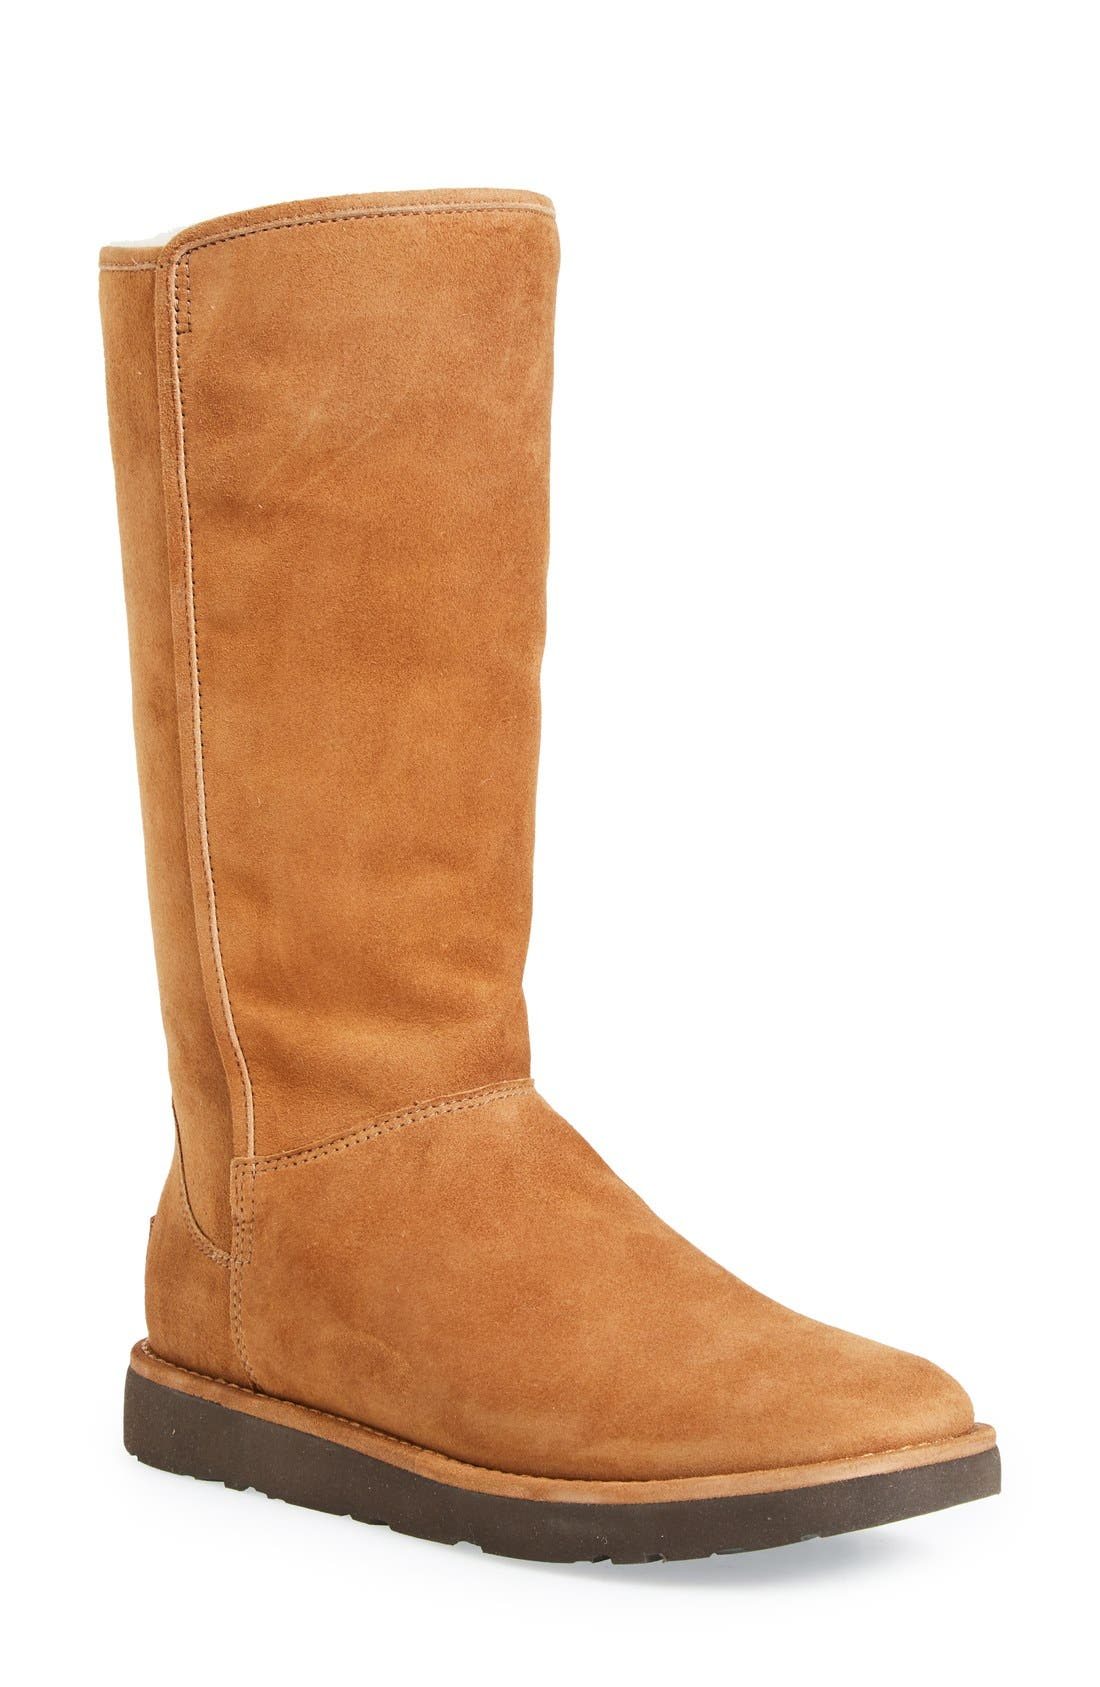 Alternate Image 1 Selected - UGG® Abree II Tall Boot (Women)